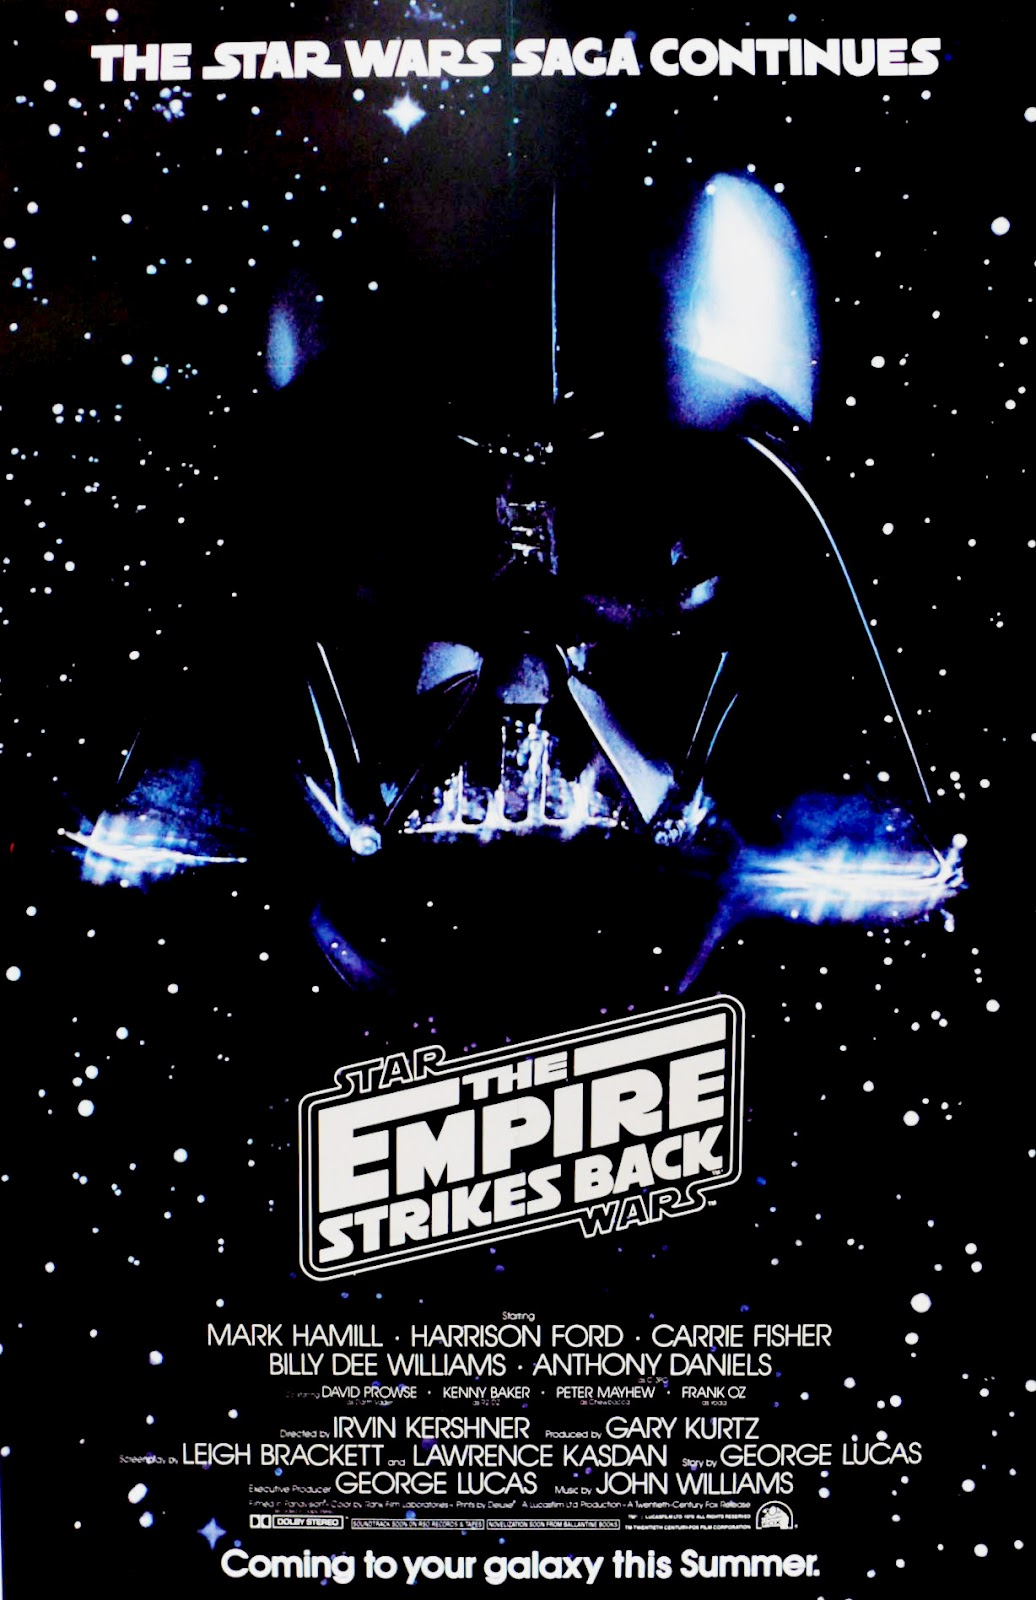 Color art and empire by natasha eaton - Continuing My Look At Movie Posters And Fan Art With The Next Film In The Star Wars Saga The Empire Strikes Back